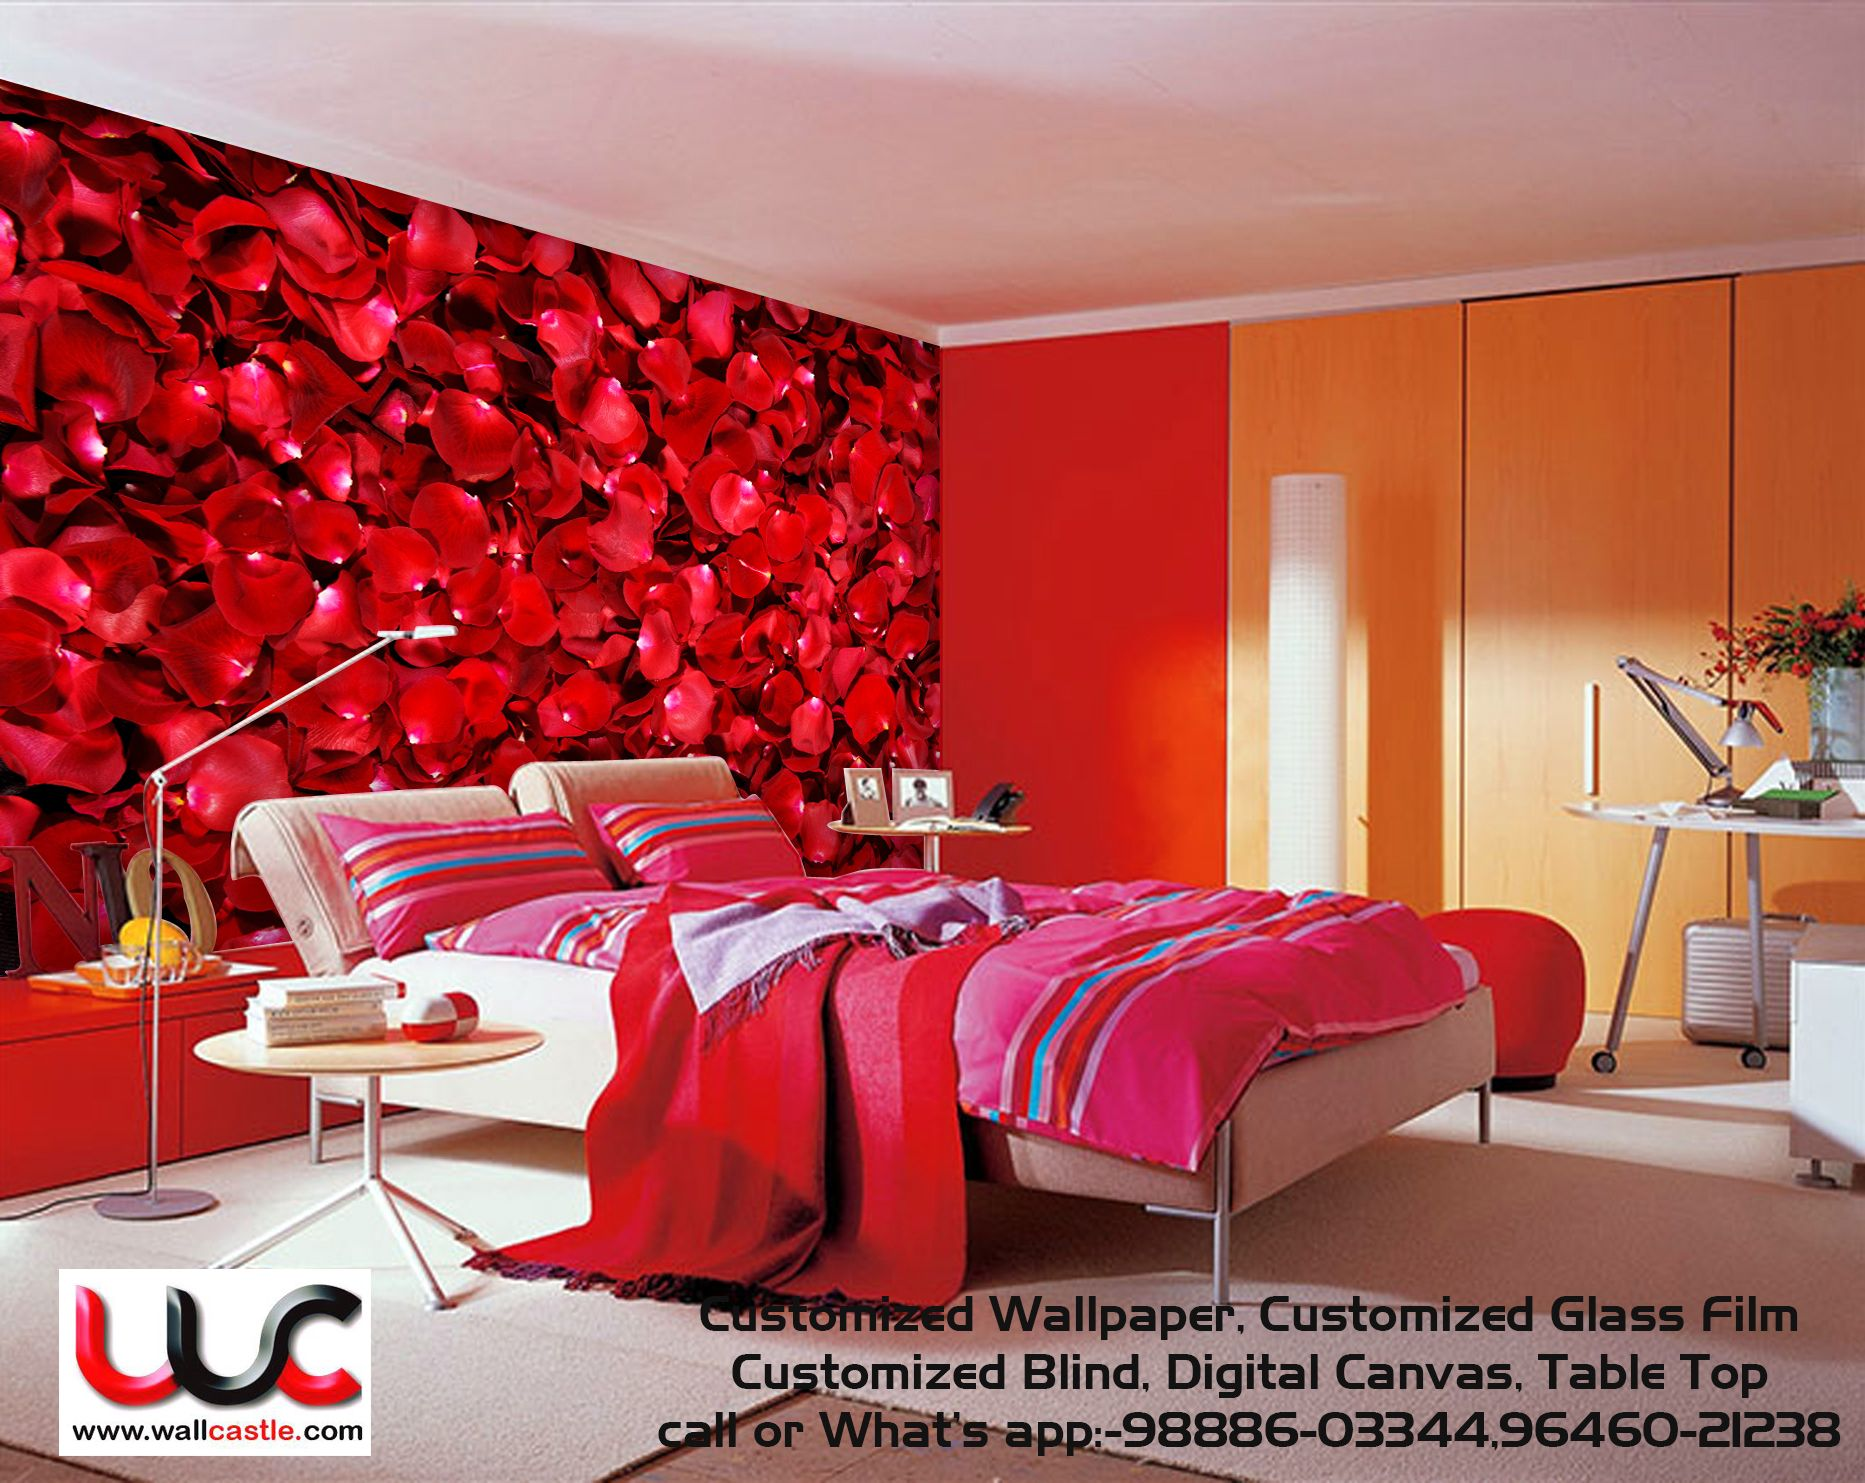 Red Roses Leaf Wallpaper Red Rooms Luxury Bedroom Design Room Wall Painting Room design colour app